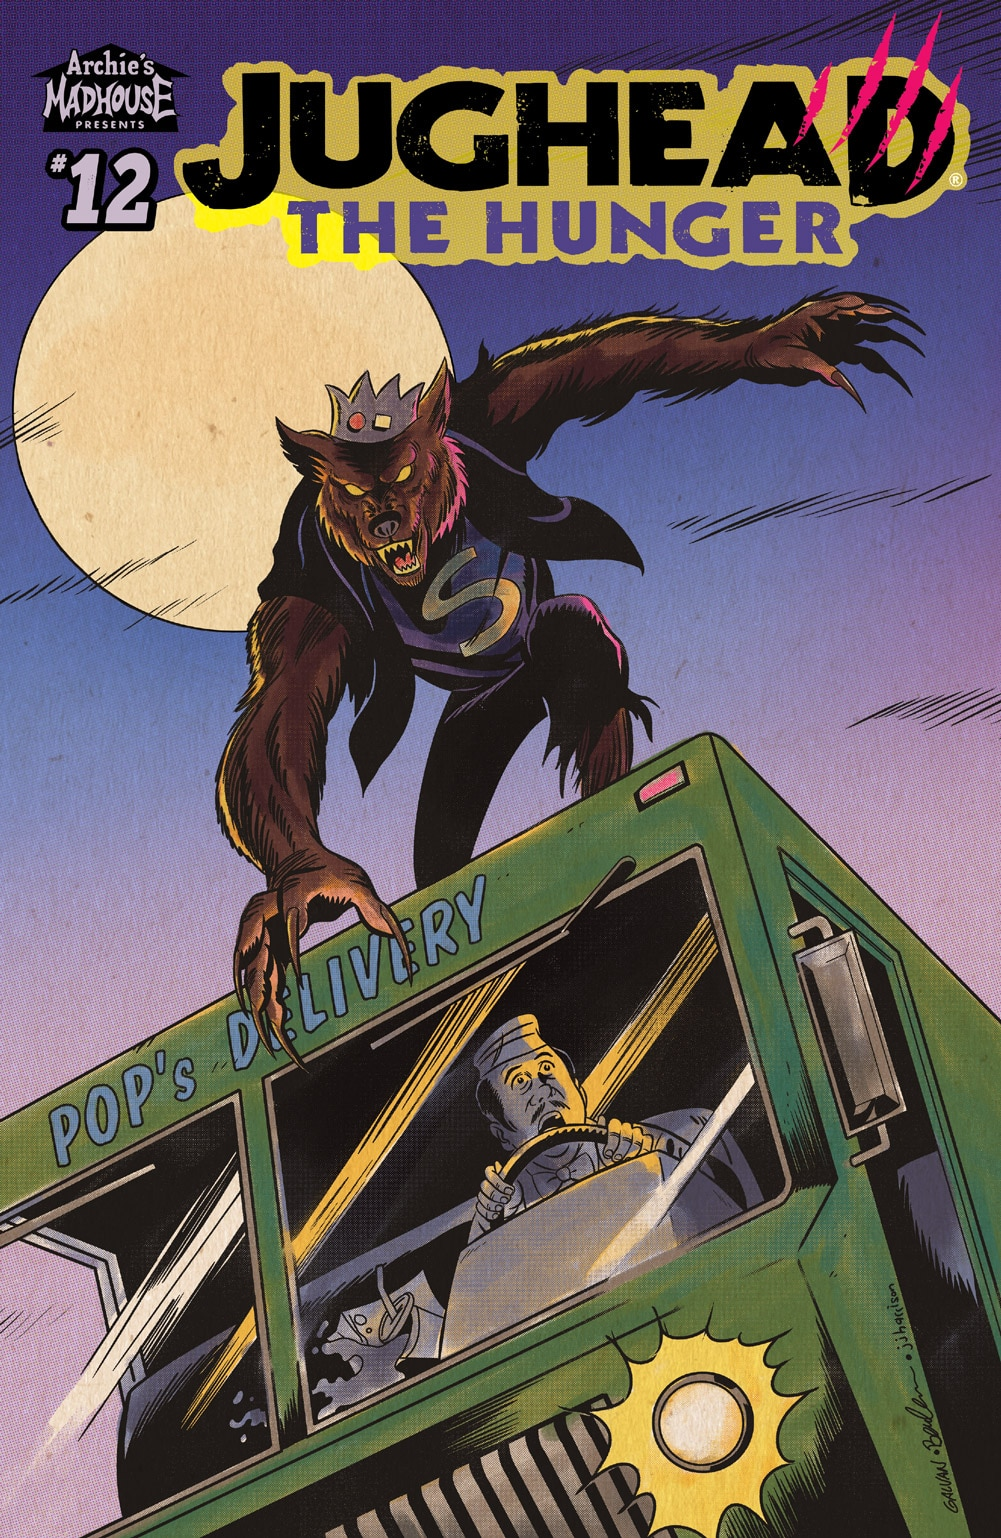 JugheadTheHunger 12 CoverC Galvan - Exclusive: JUGHEAD: THE HUNGER Issue #12 Covers and Preview